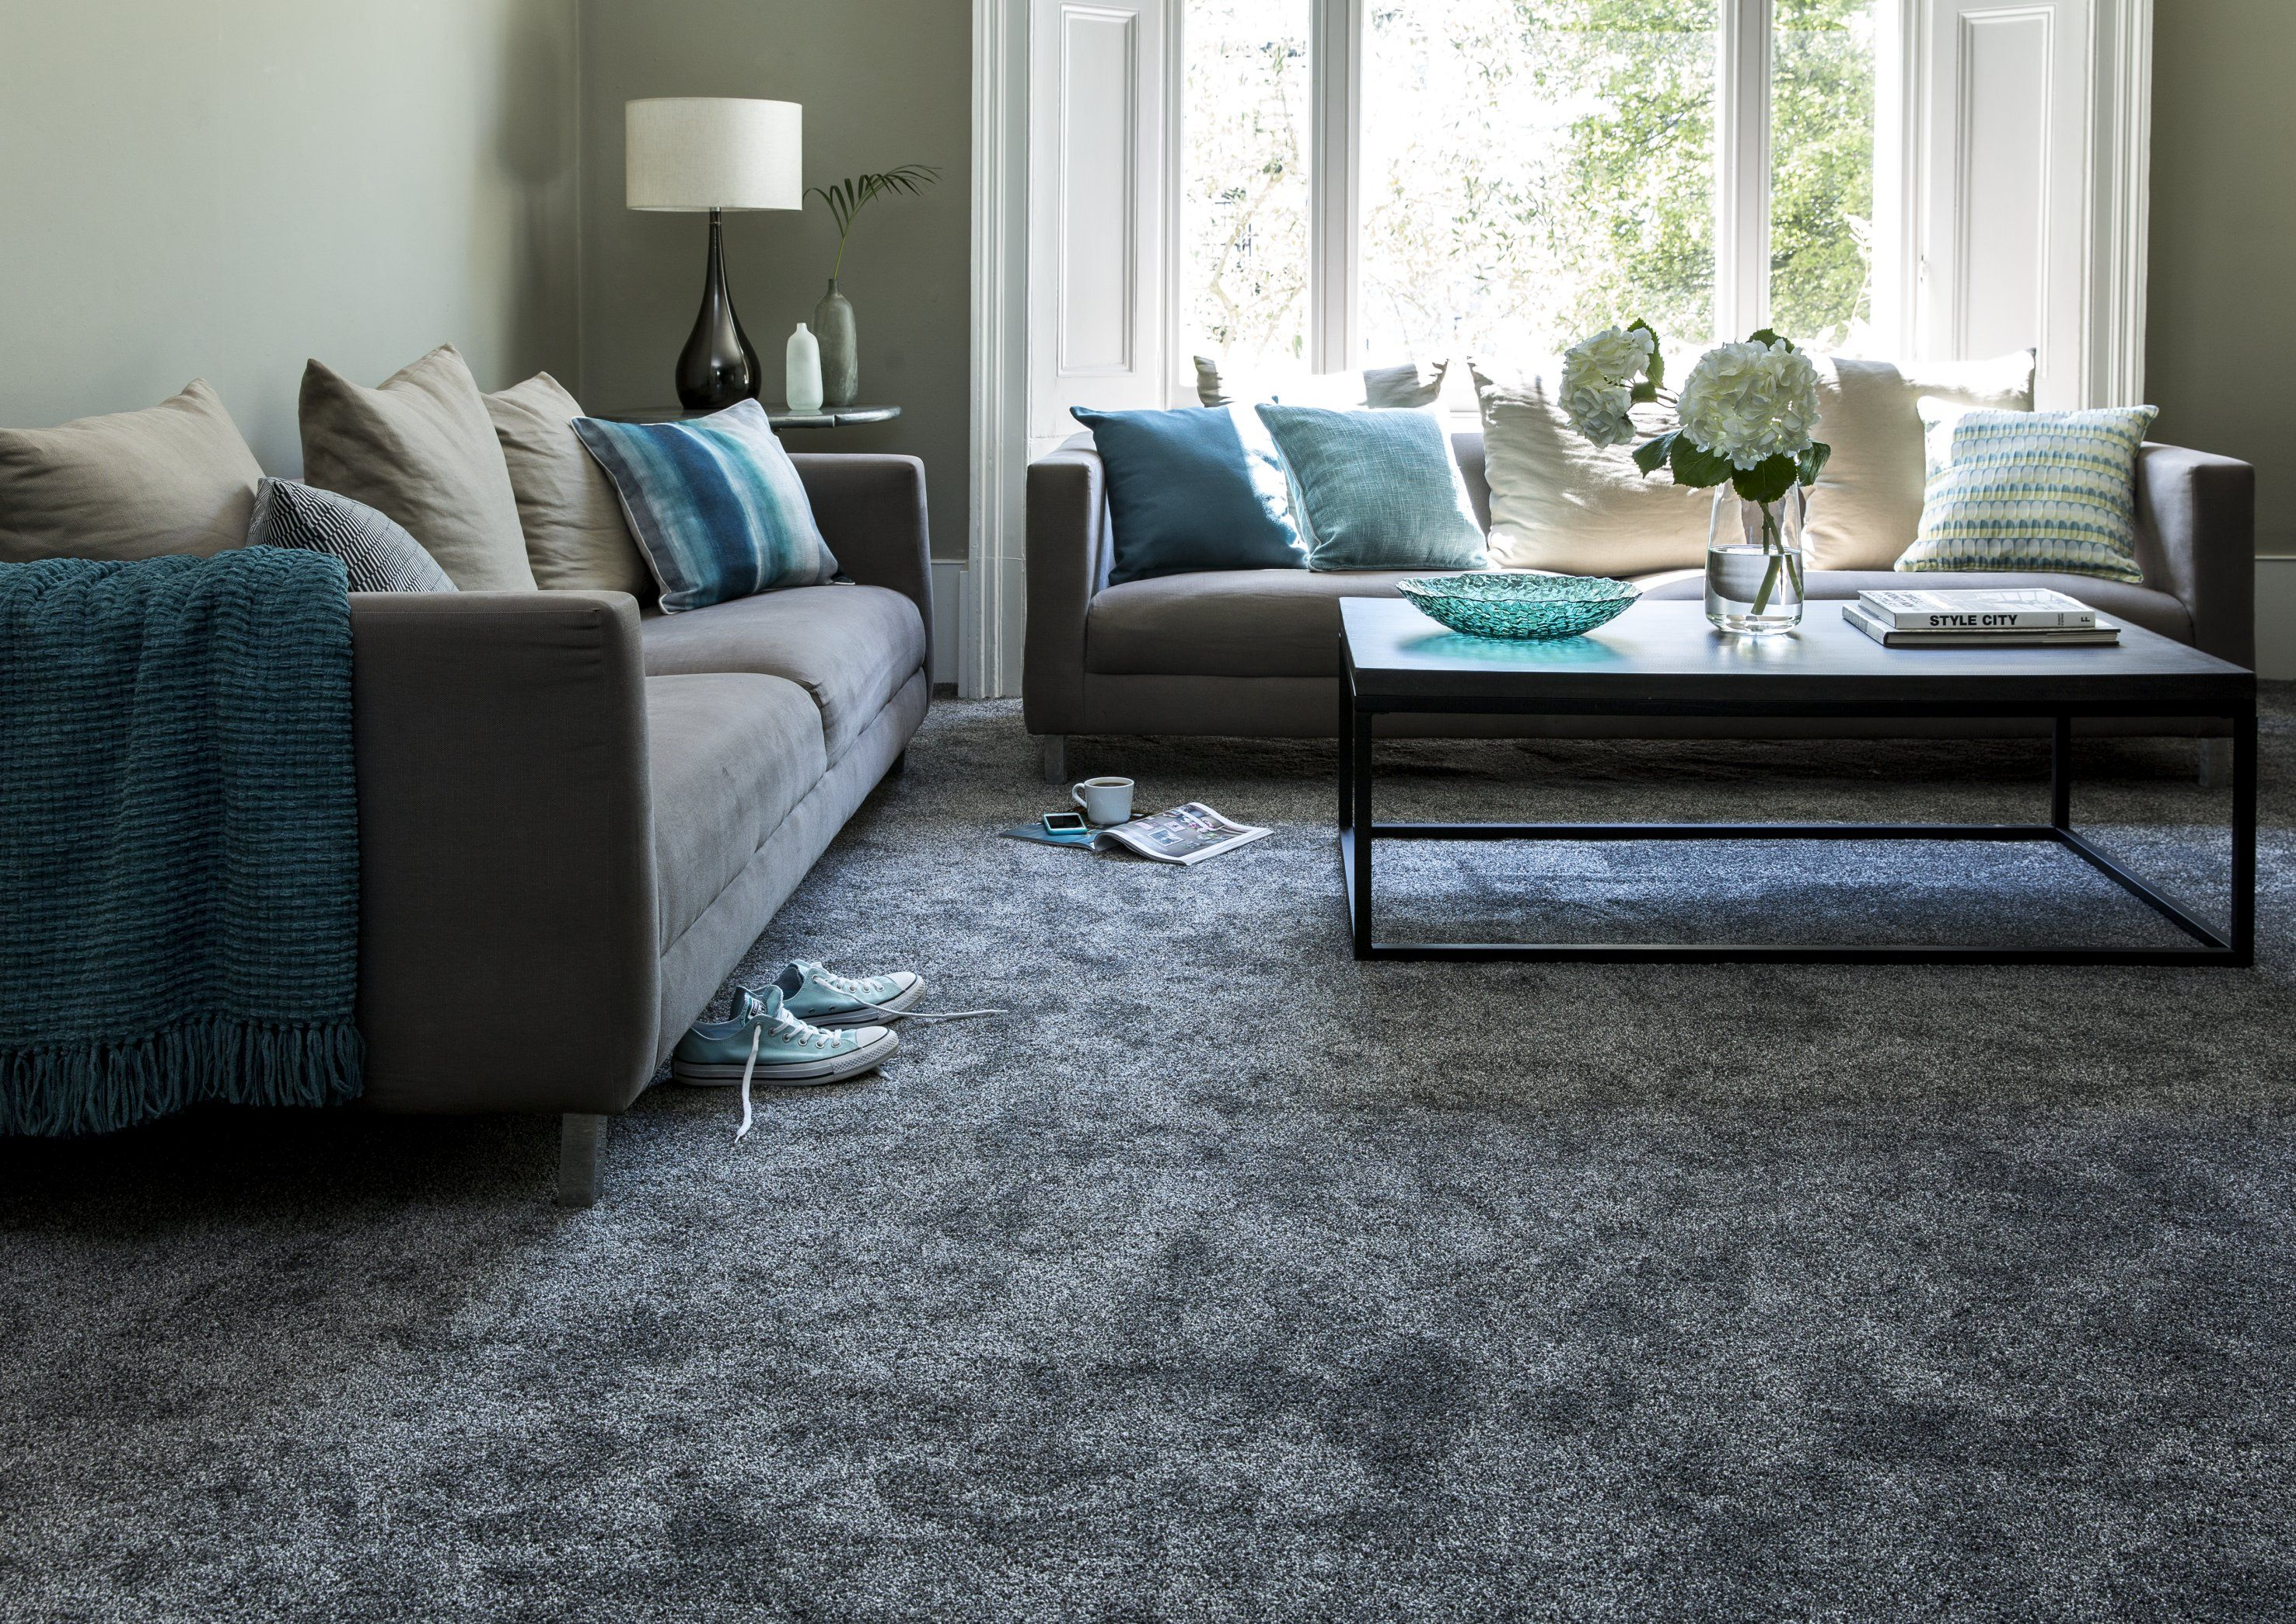 Super Soft Easy Clean And Manufactured In The Uk Just Three Reasons Why Infatuation Heathers Could Be The Furniture Furniture Arrangement Living Room Carpet